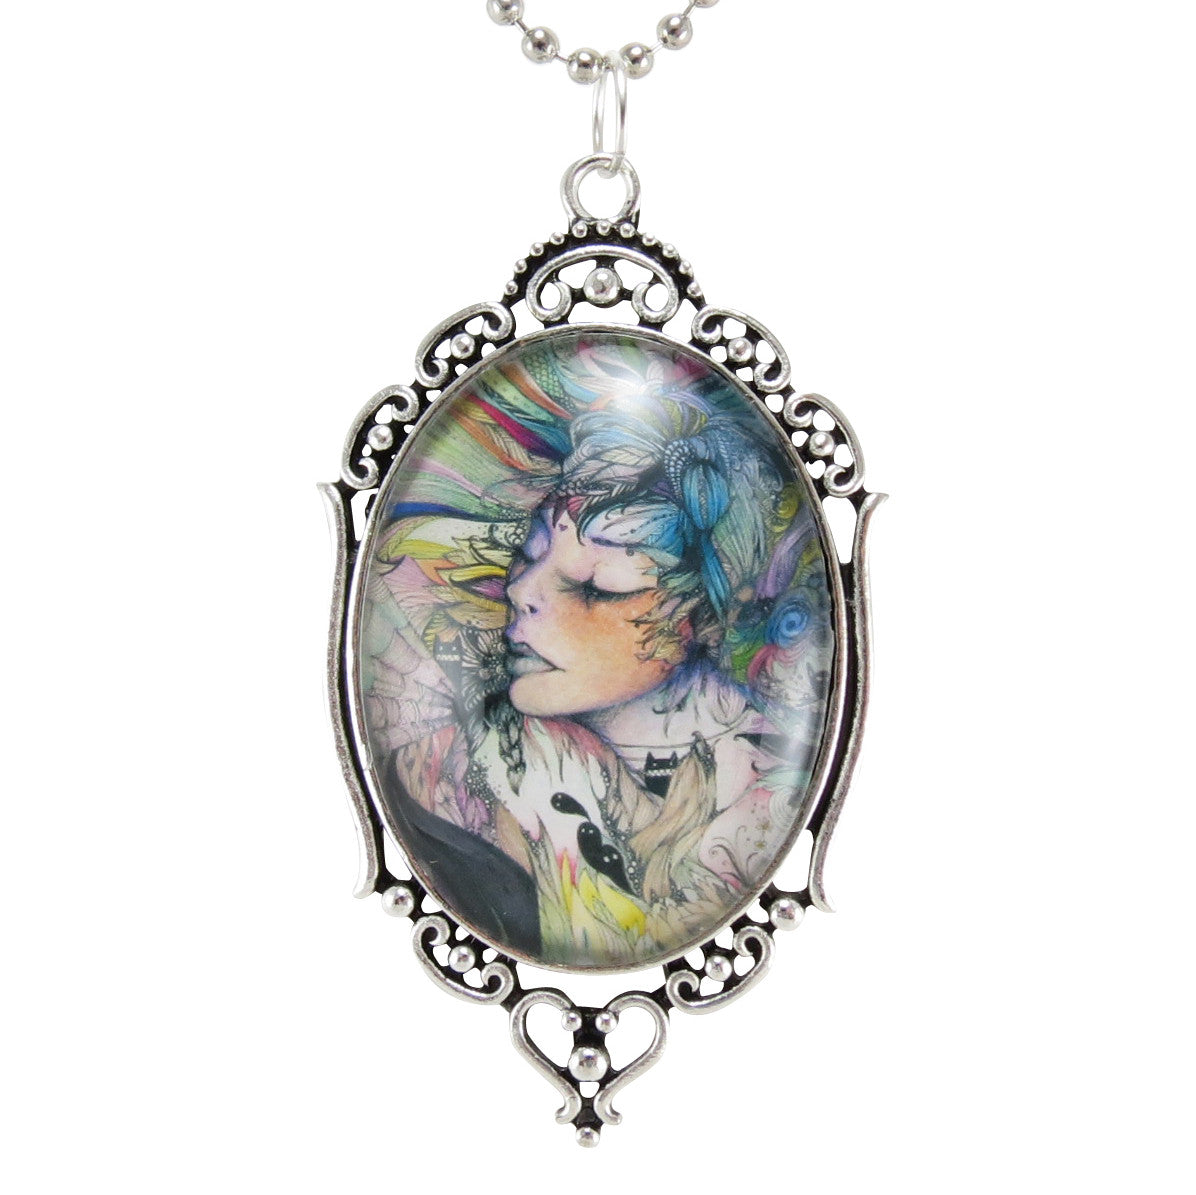 moon pendant glass wiccan dp kitchen triple art home ca picture necklace goddess jewelry amazon charm